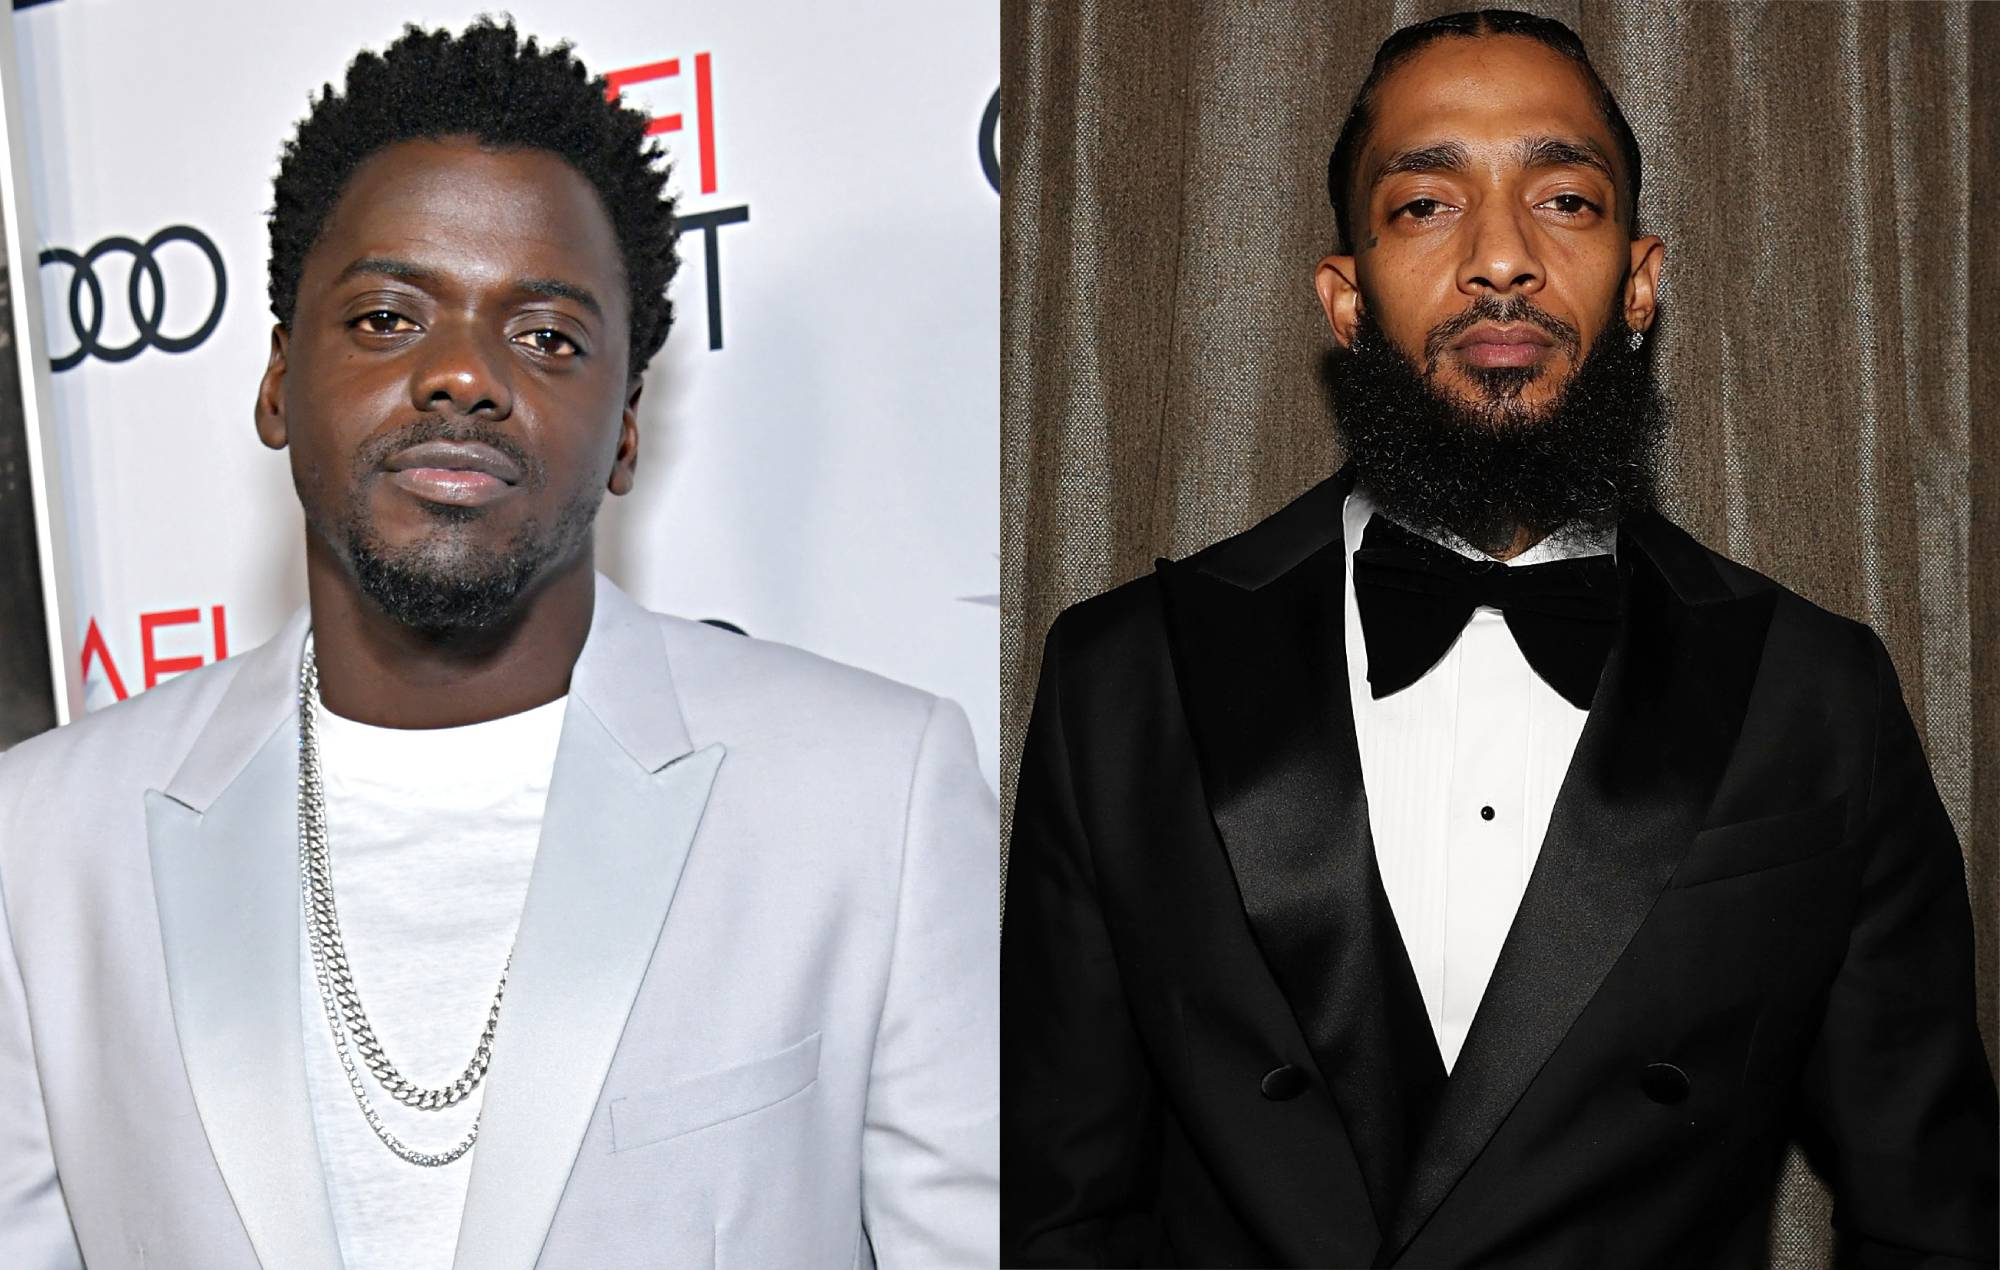 Daniel Kaluuya quoted Nipsey Hussle in his Golden Globes acceptance speech